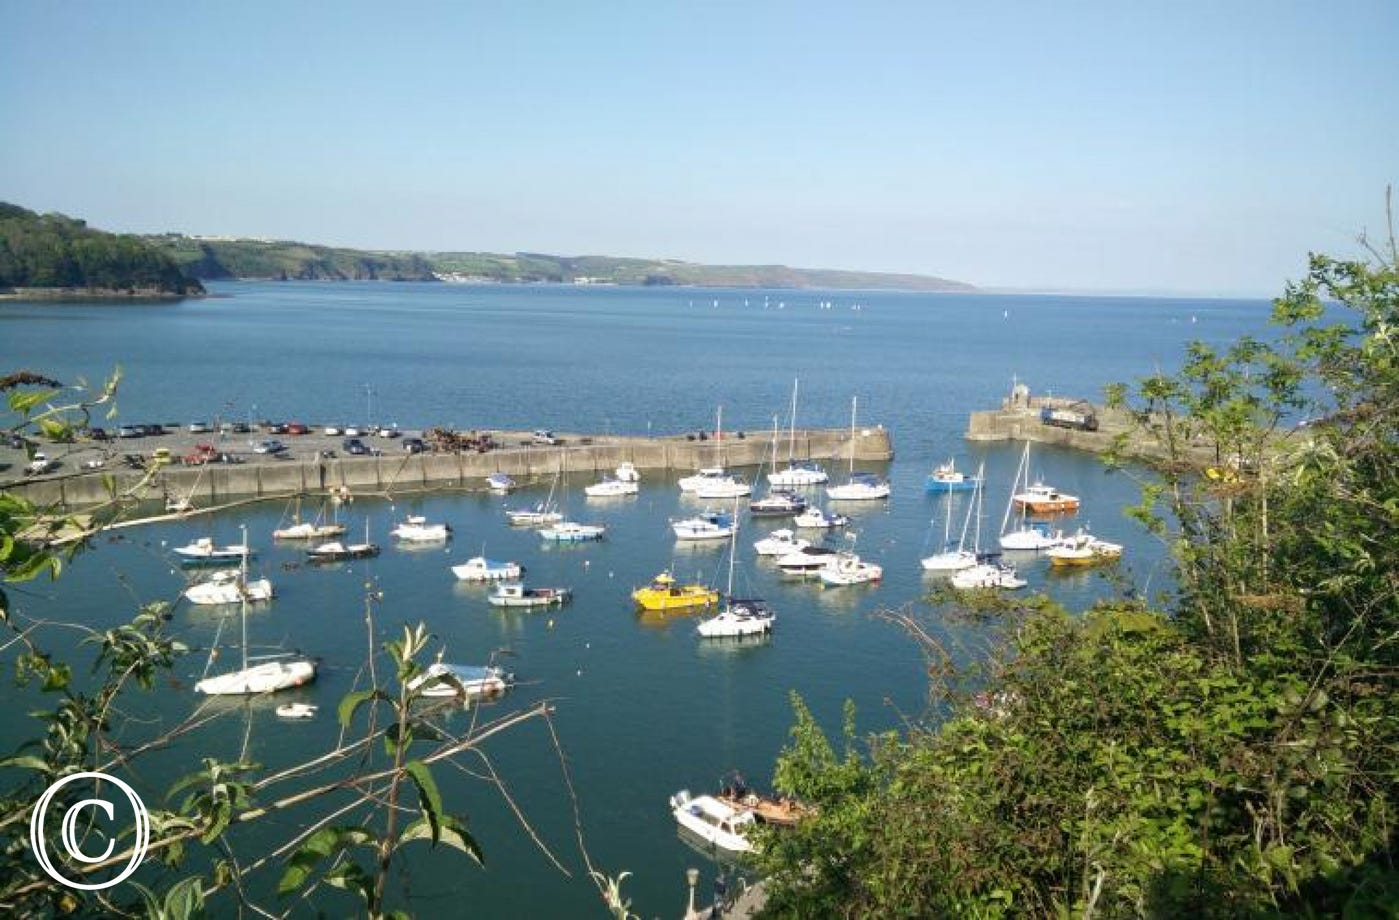 View of boats in Saundersfoot harbour